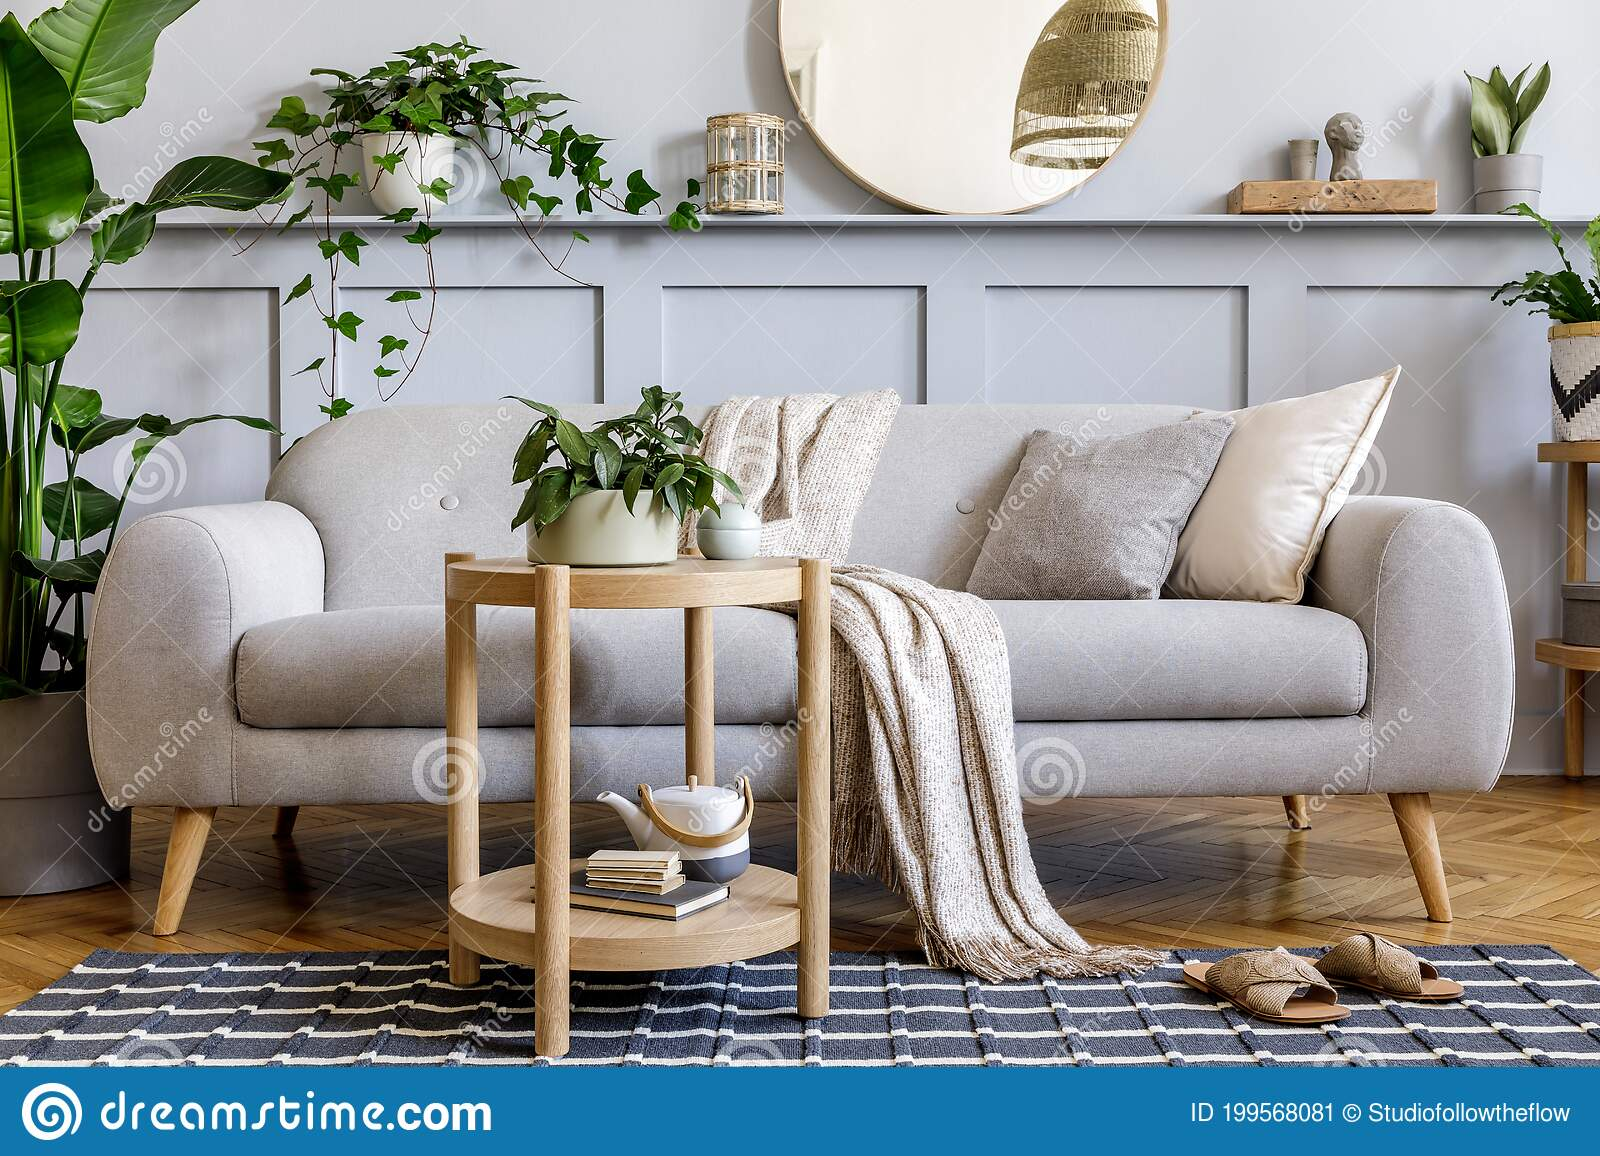 Scandinavian Living Room Interior With Design Grey Sofa Wooden Coffee Table Tropical Plants Shelf Mirror Furniture Plaid Stock Image Image Of Indoors Comfortable 199568081